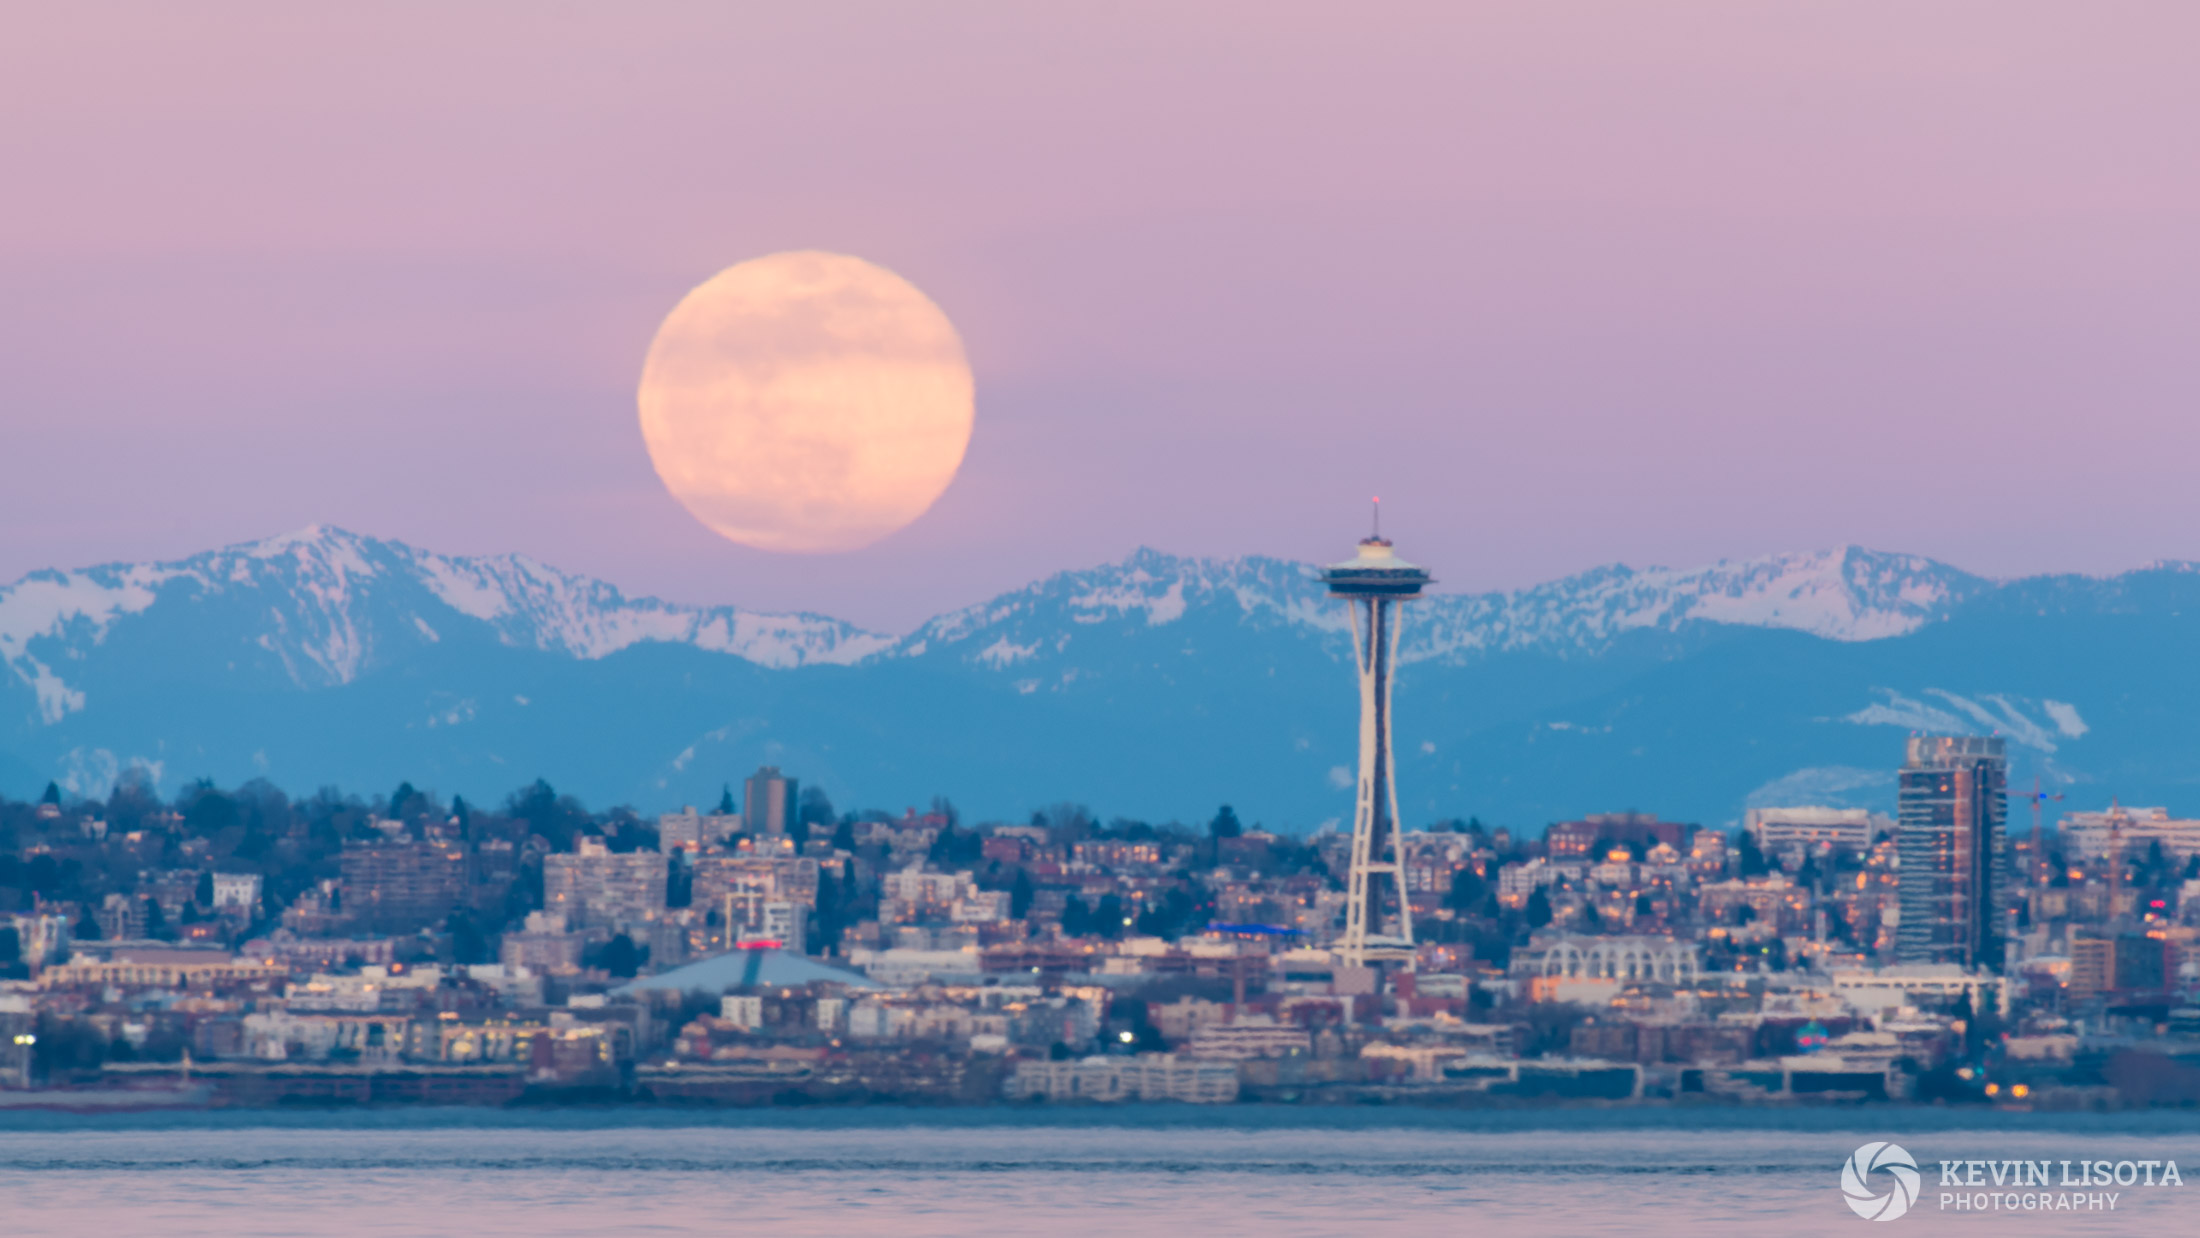 Moonrise over Seattle and the Cascade Mounts showing strong heat distortion from the cold water of Puget Sound.b